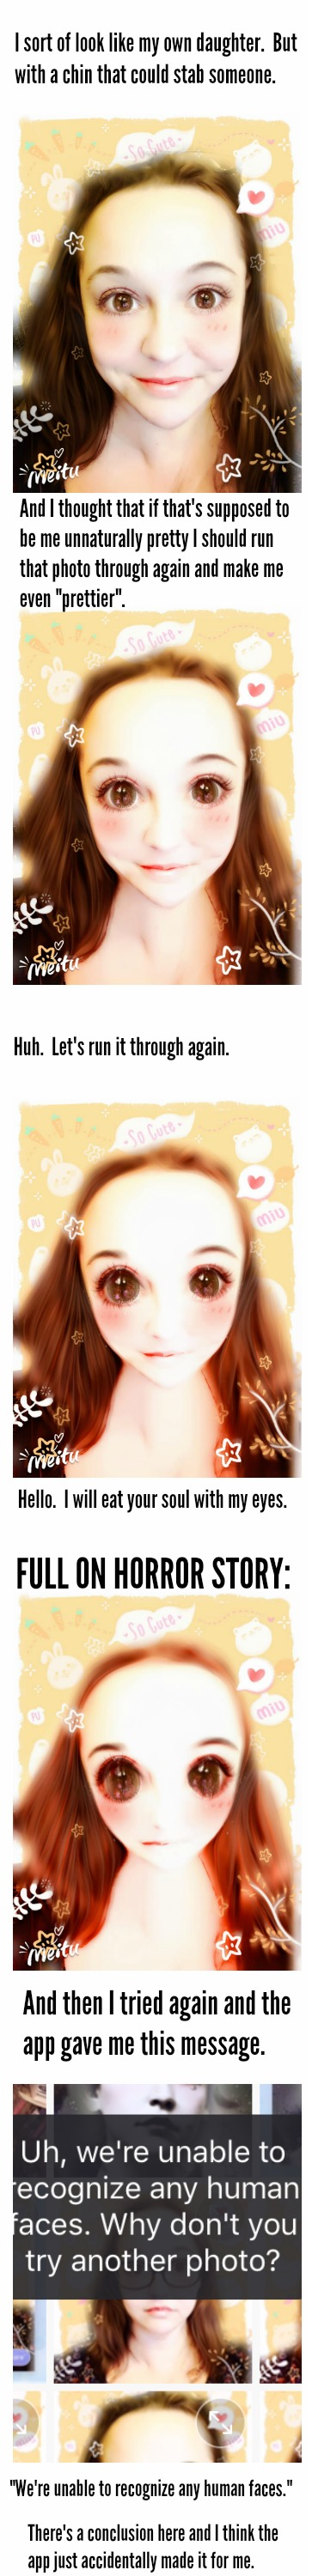 meitu-bloggess